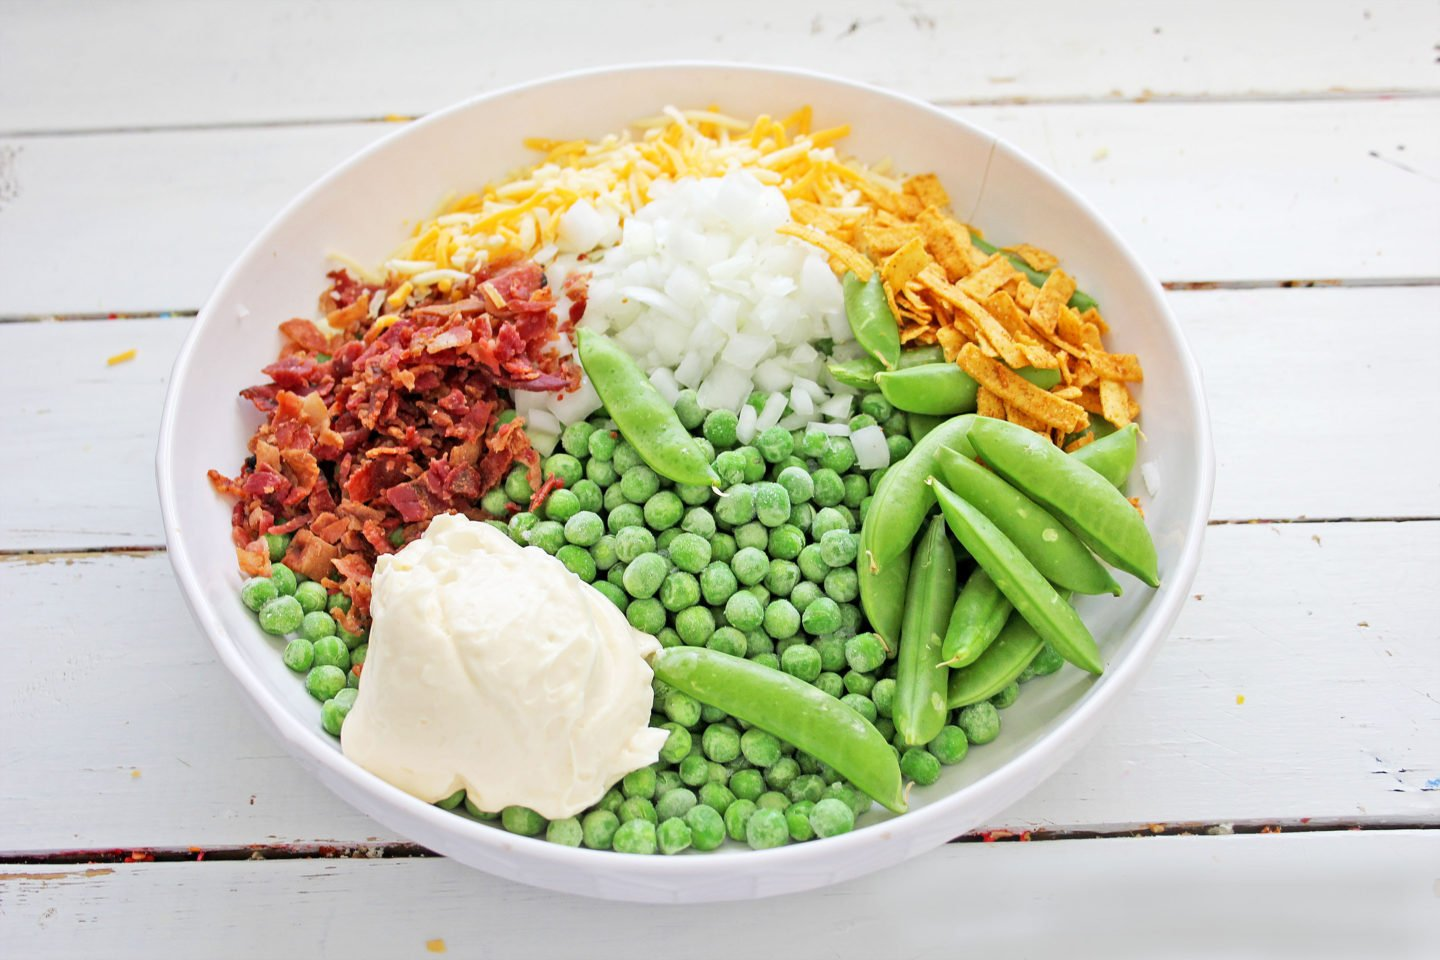 Ingredients for green pea salad recipe. Bacon, sweet peas, cheddar cheese, onion, sour cream.